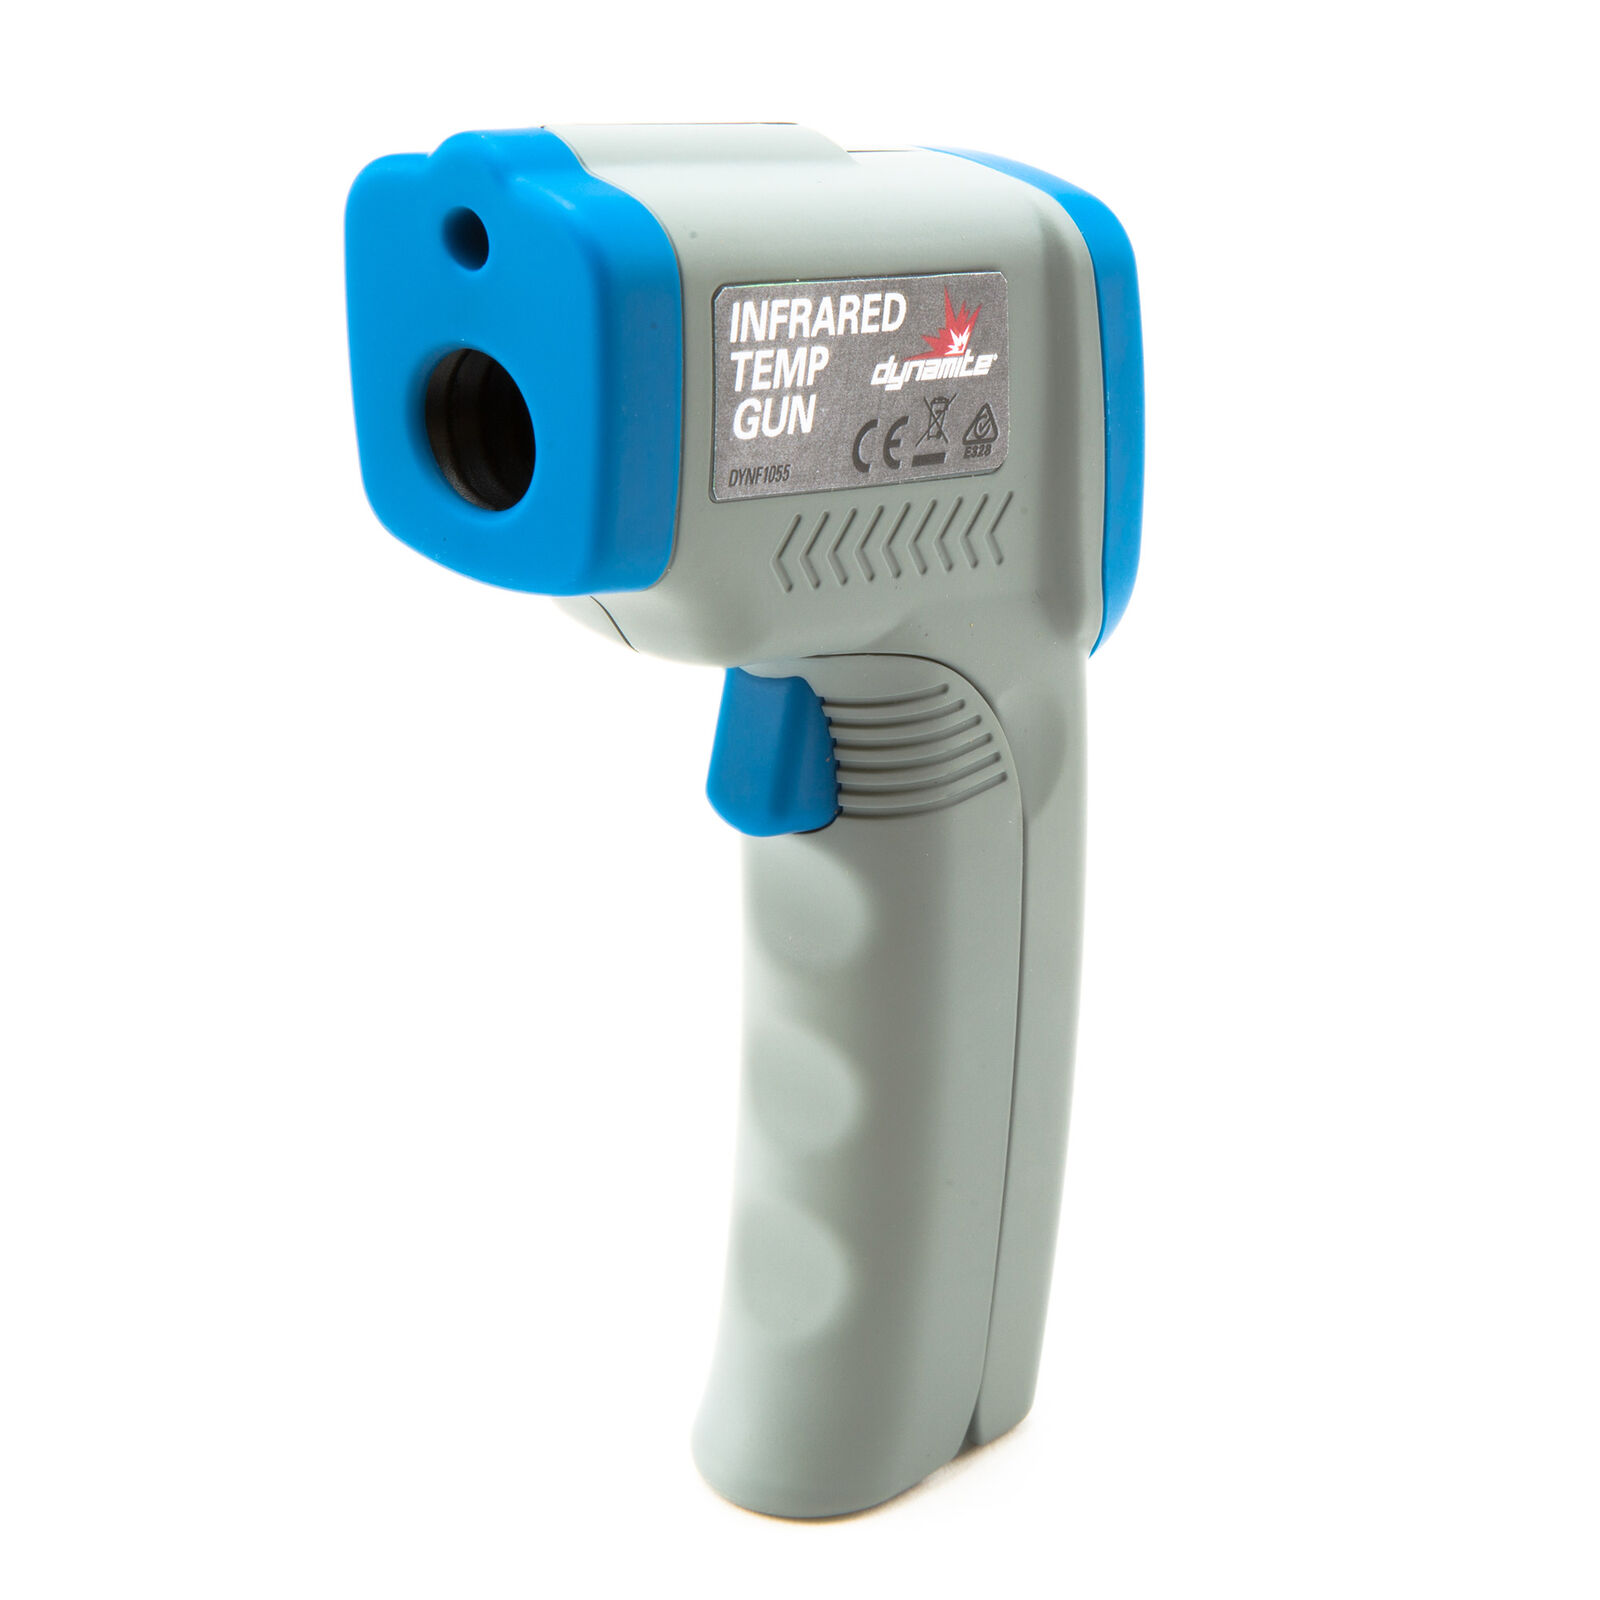 Infrared Temp Gun/Thermometer with Laser Sight